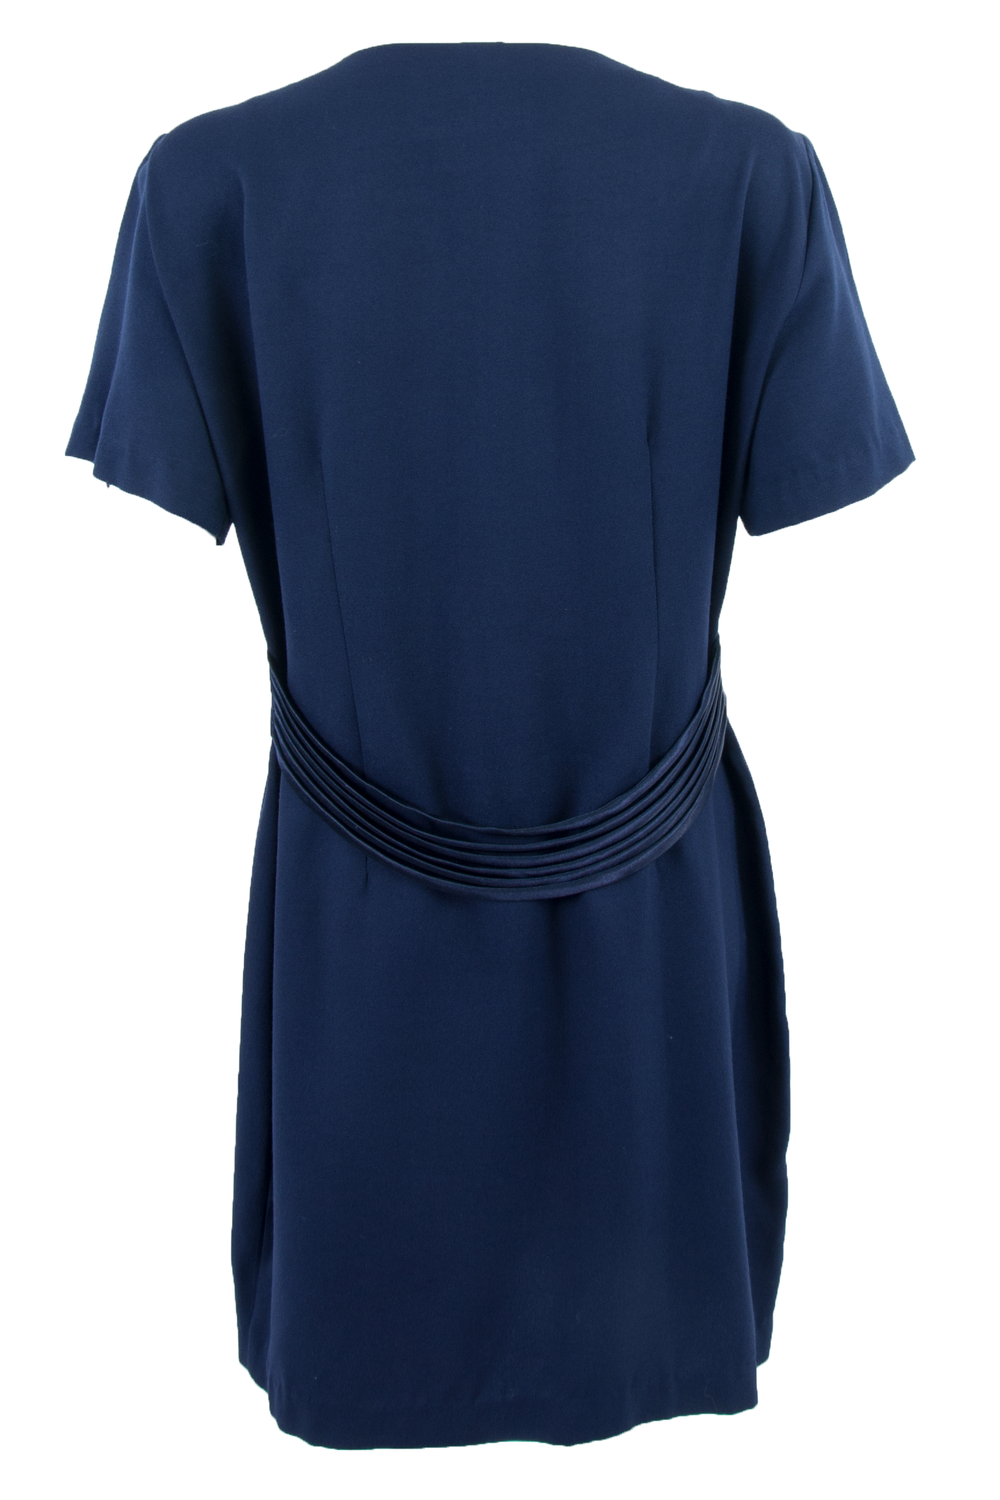 vintage navy blue dress with satin belt waist and short sleeves